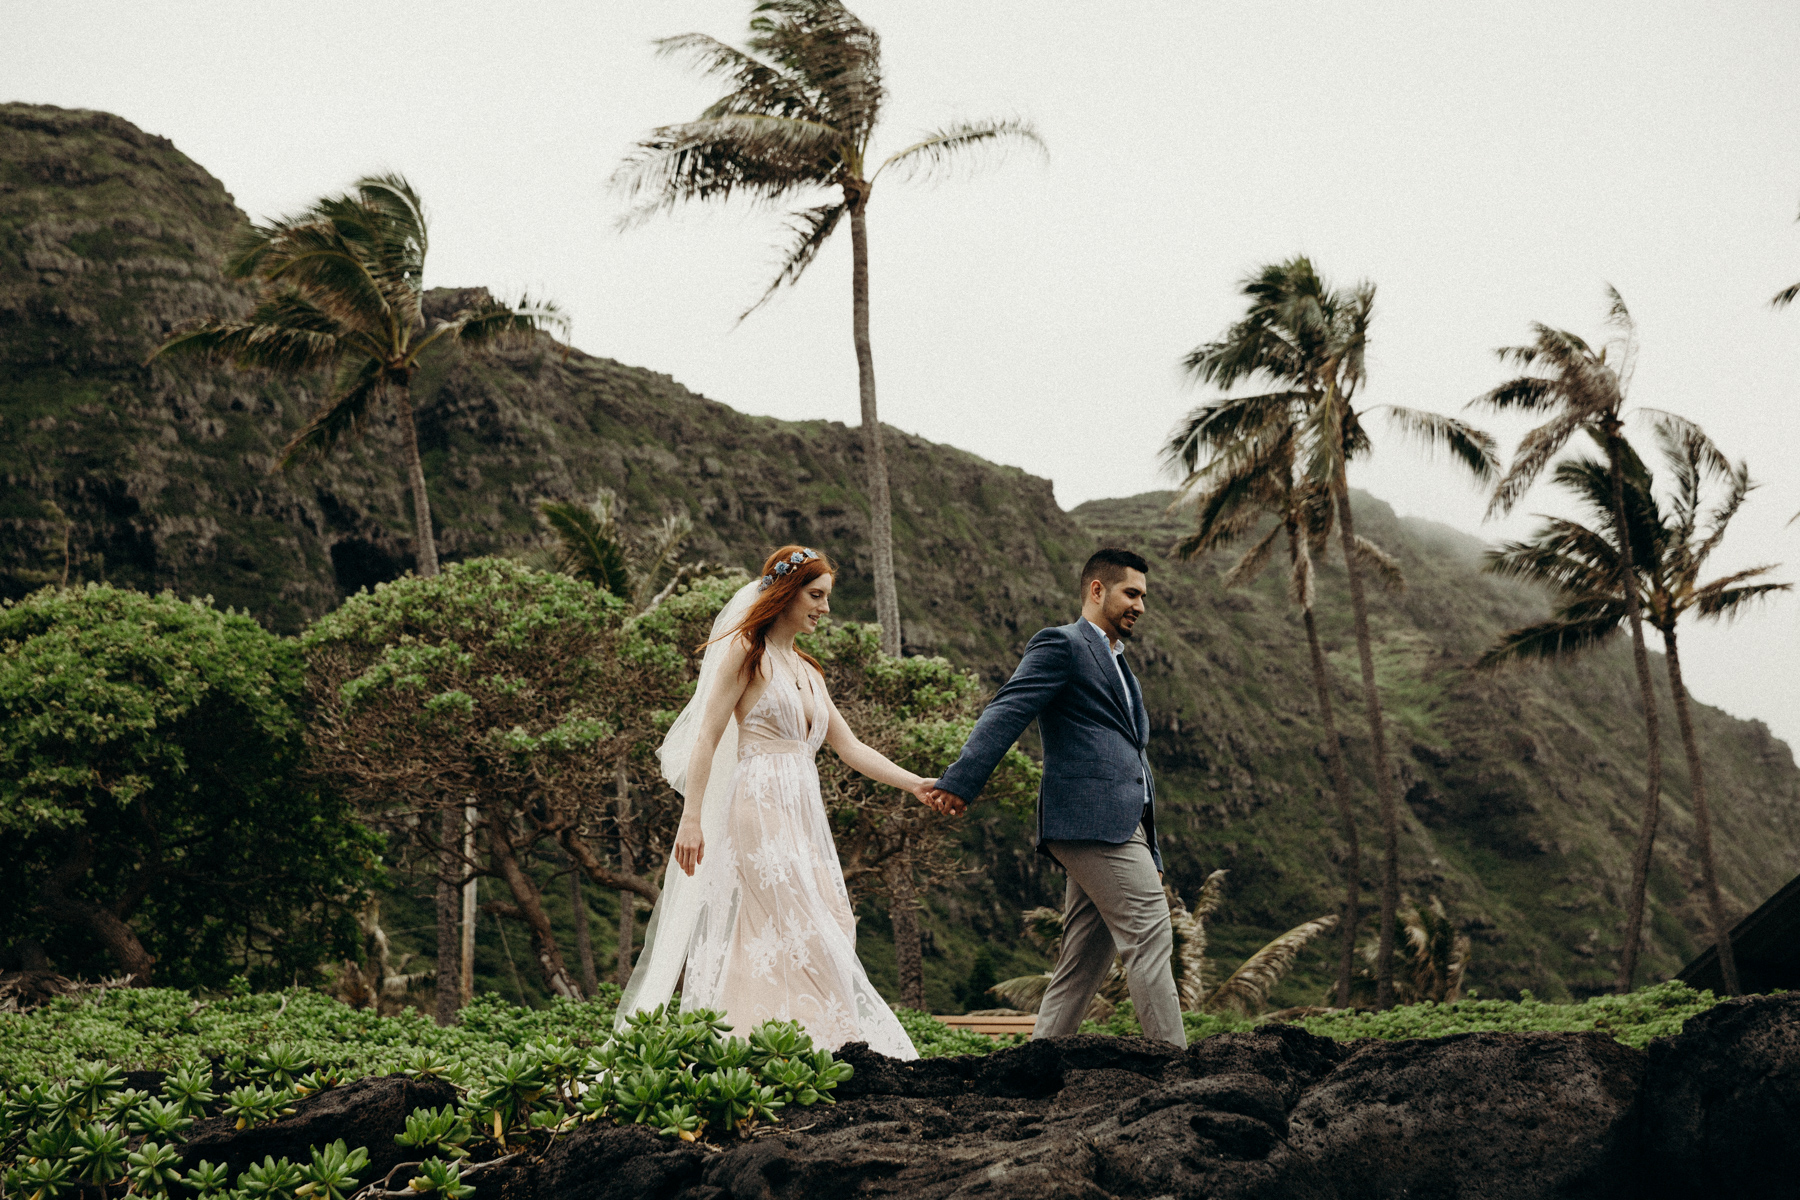 hawaii-wedding-photographer-keani-bakula-17.jpg